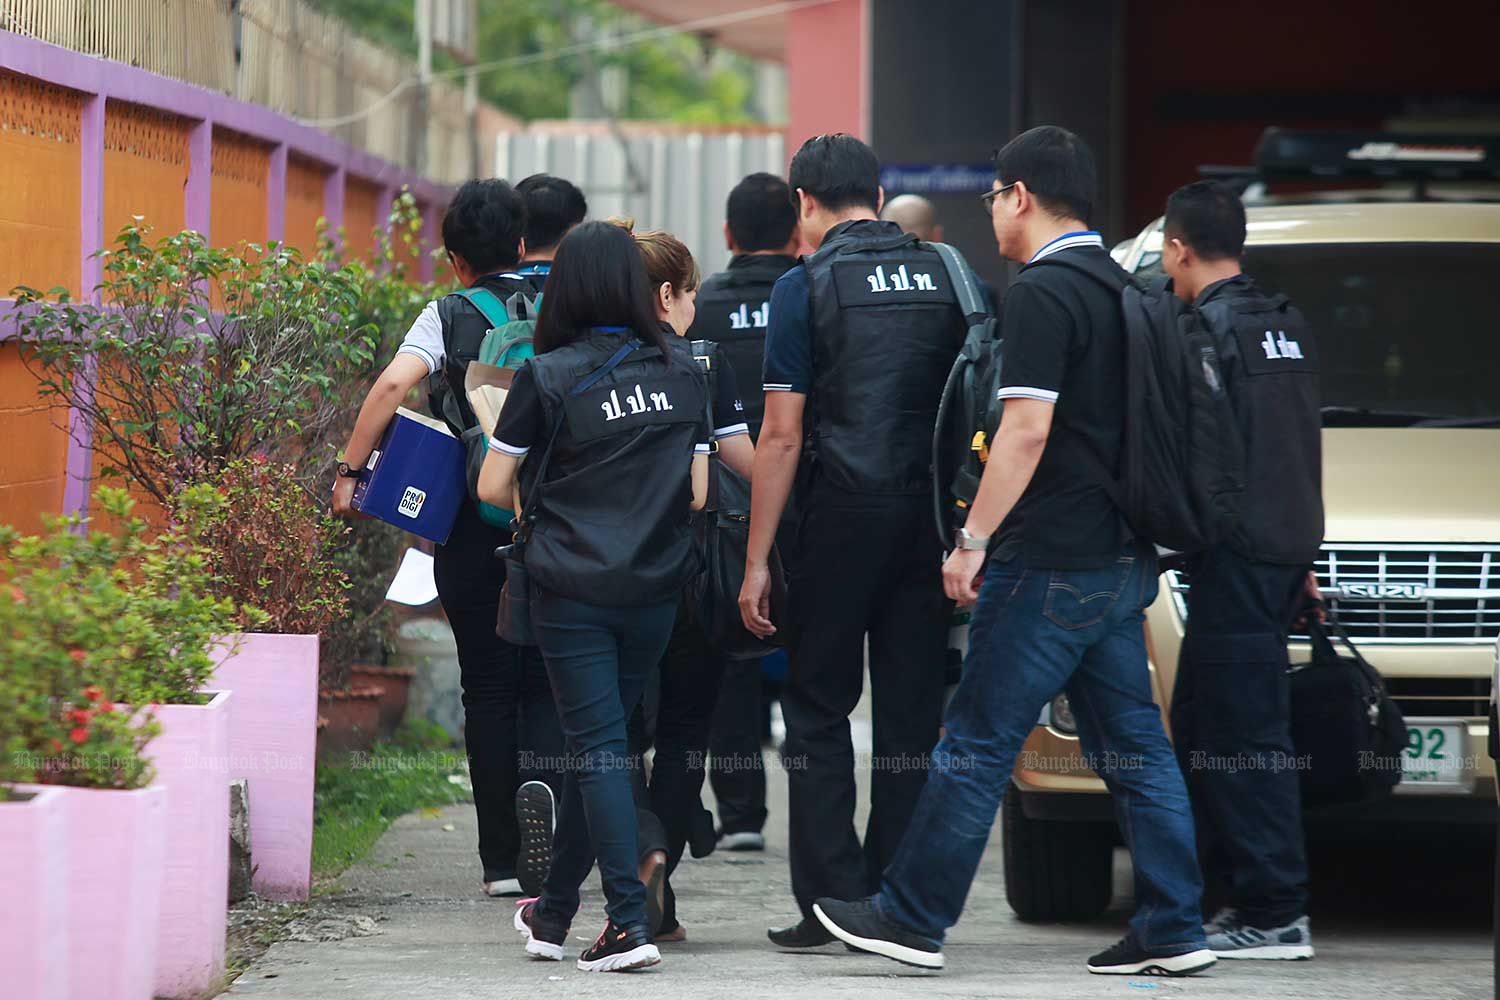 Representatives from the Public Sector Anti-Corruption Commission visit a state shelter in Bangkok to speak with girls rescued during the 2018 raid on the Victoria's Secret Massage parlour. (Bangkok Post file photo)